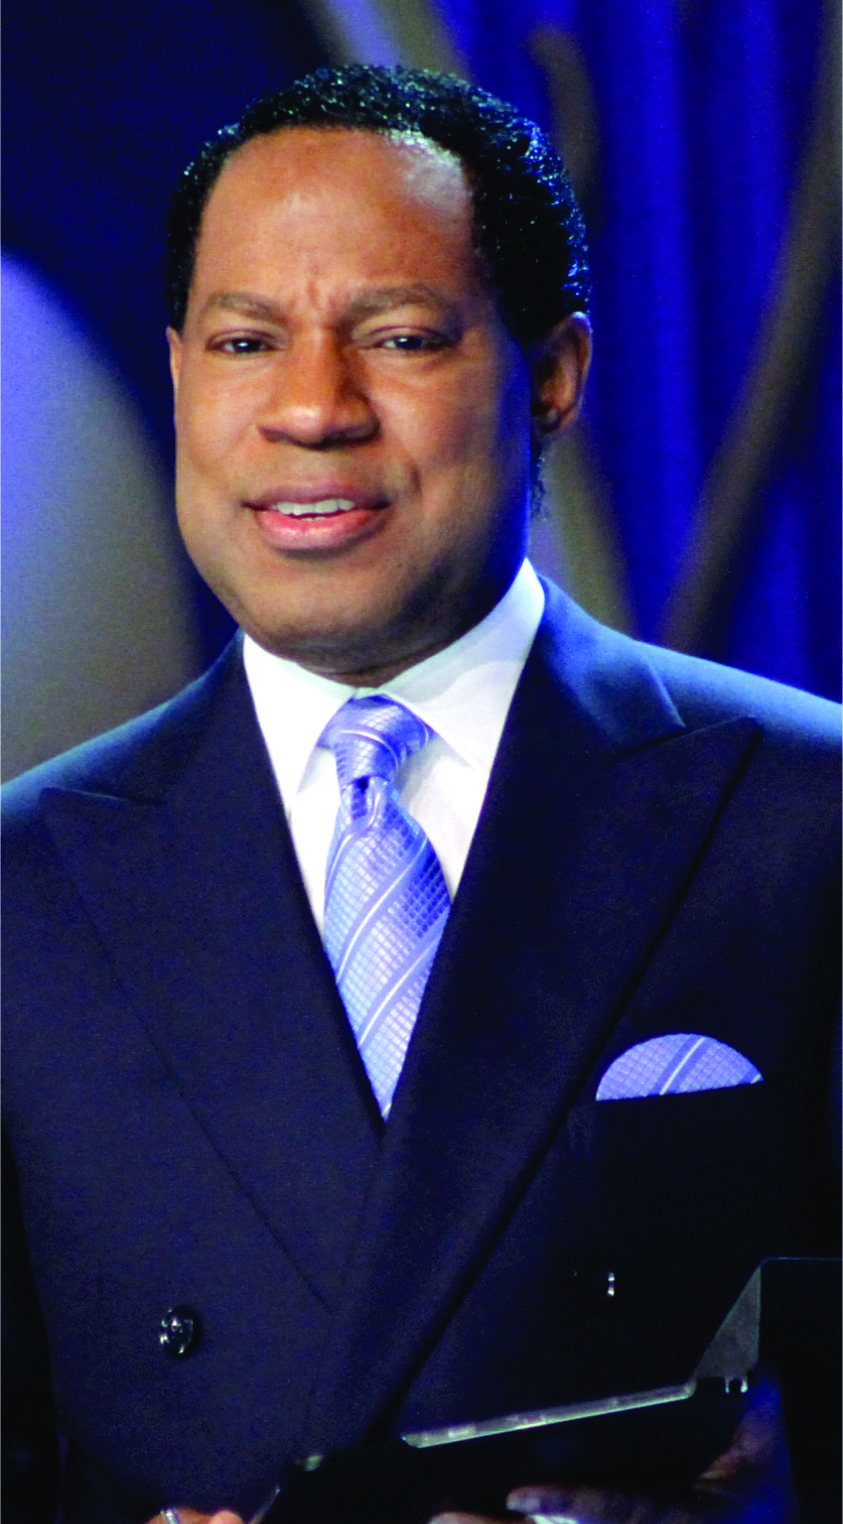 When over 40 million Ministers of the Gospel joined Pastor Chris in a Global Classroom